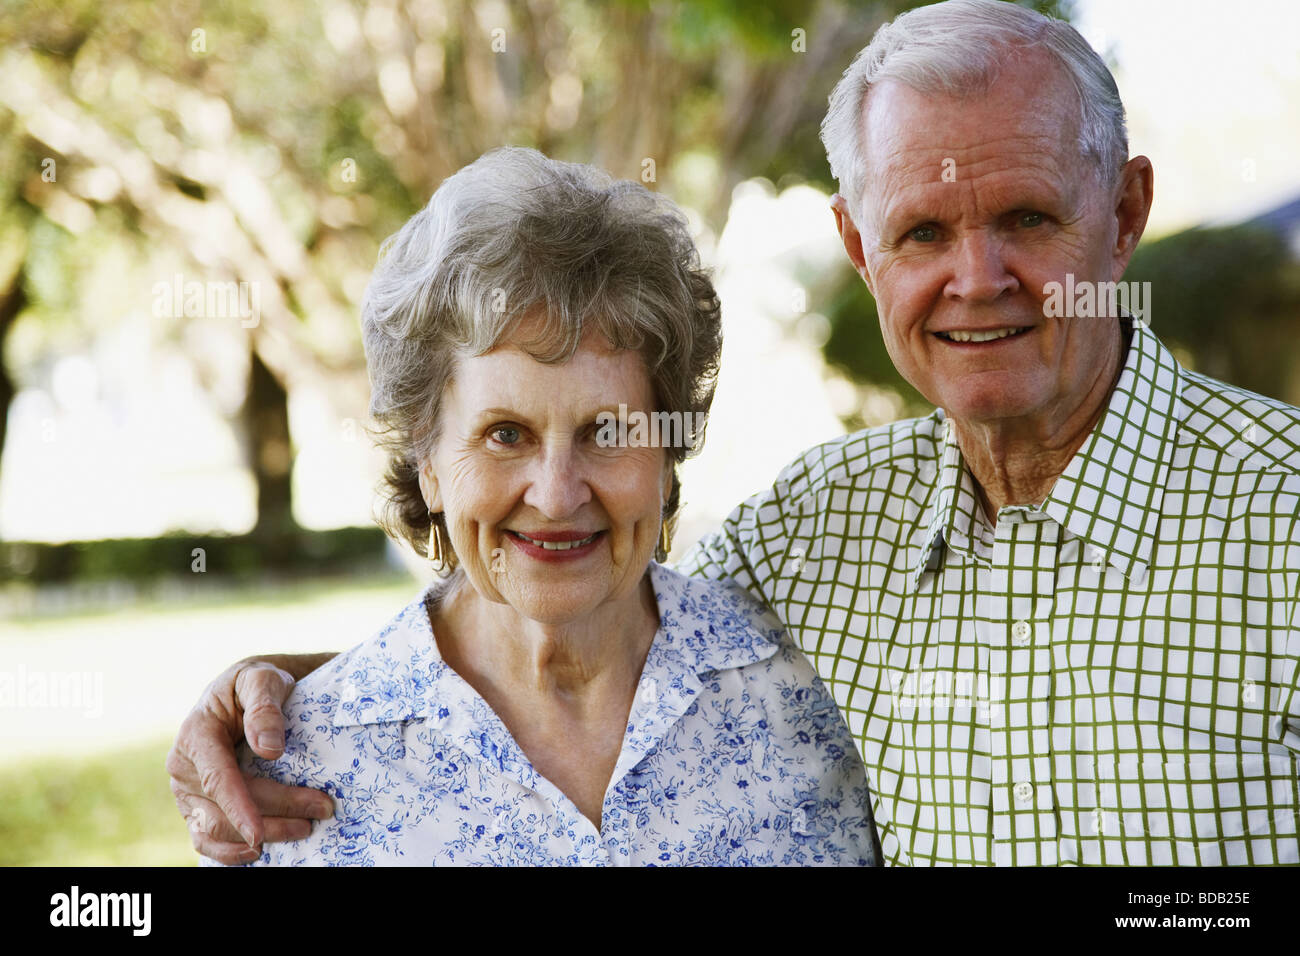 Portrait of a senior man with arm around a senior woman and smiling - Stock Image